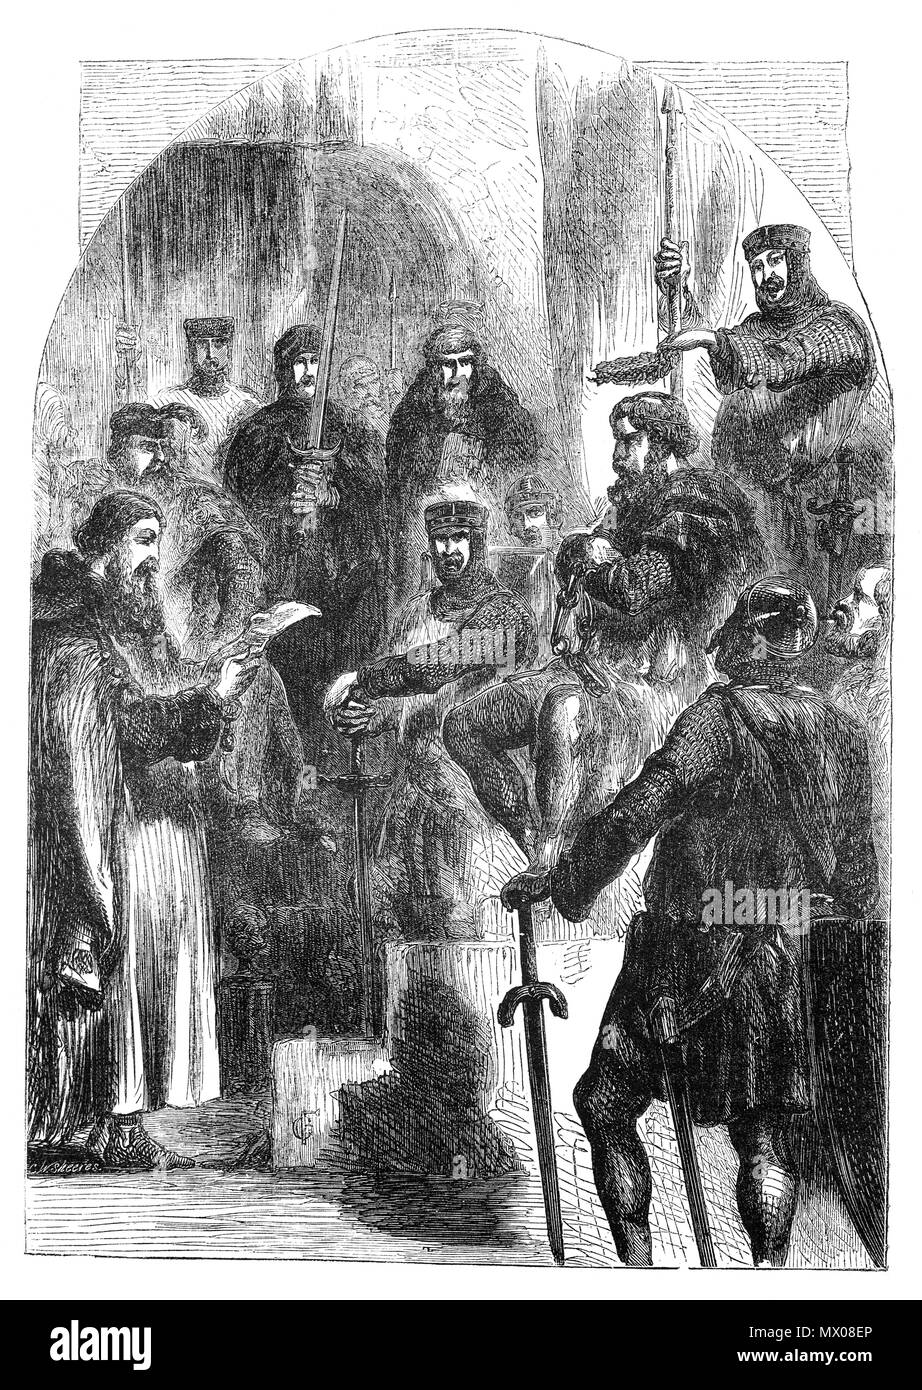 Sir William Wallace Being Crowned With Laurel To Suggest He Was